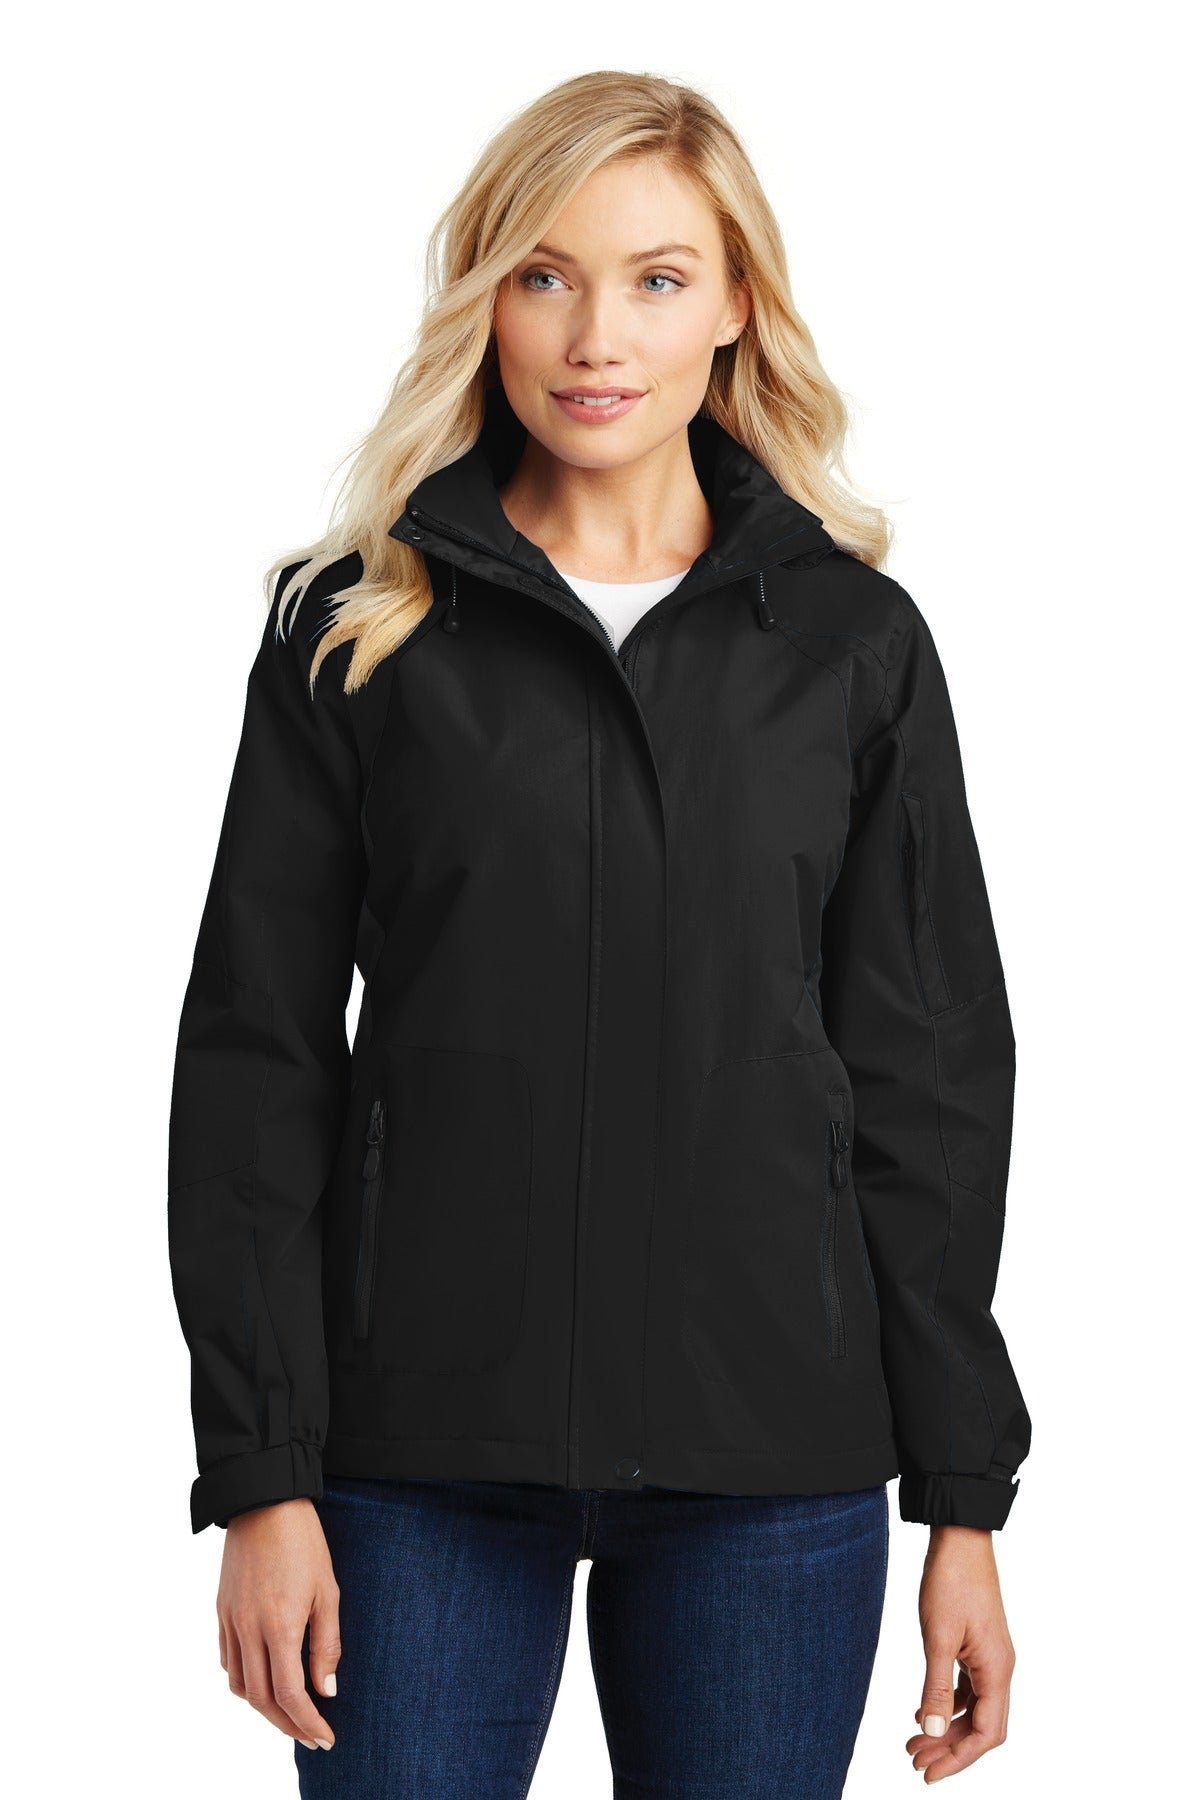 True Navy Port Authority Ladies Torrent Waterproof Jacket.